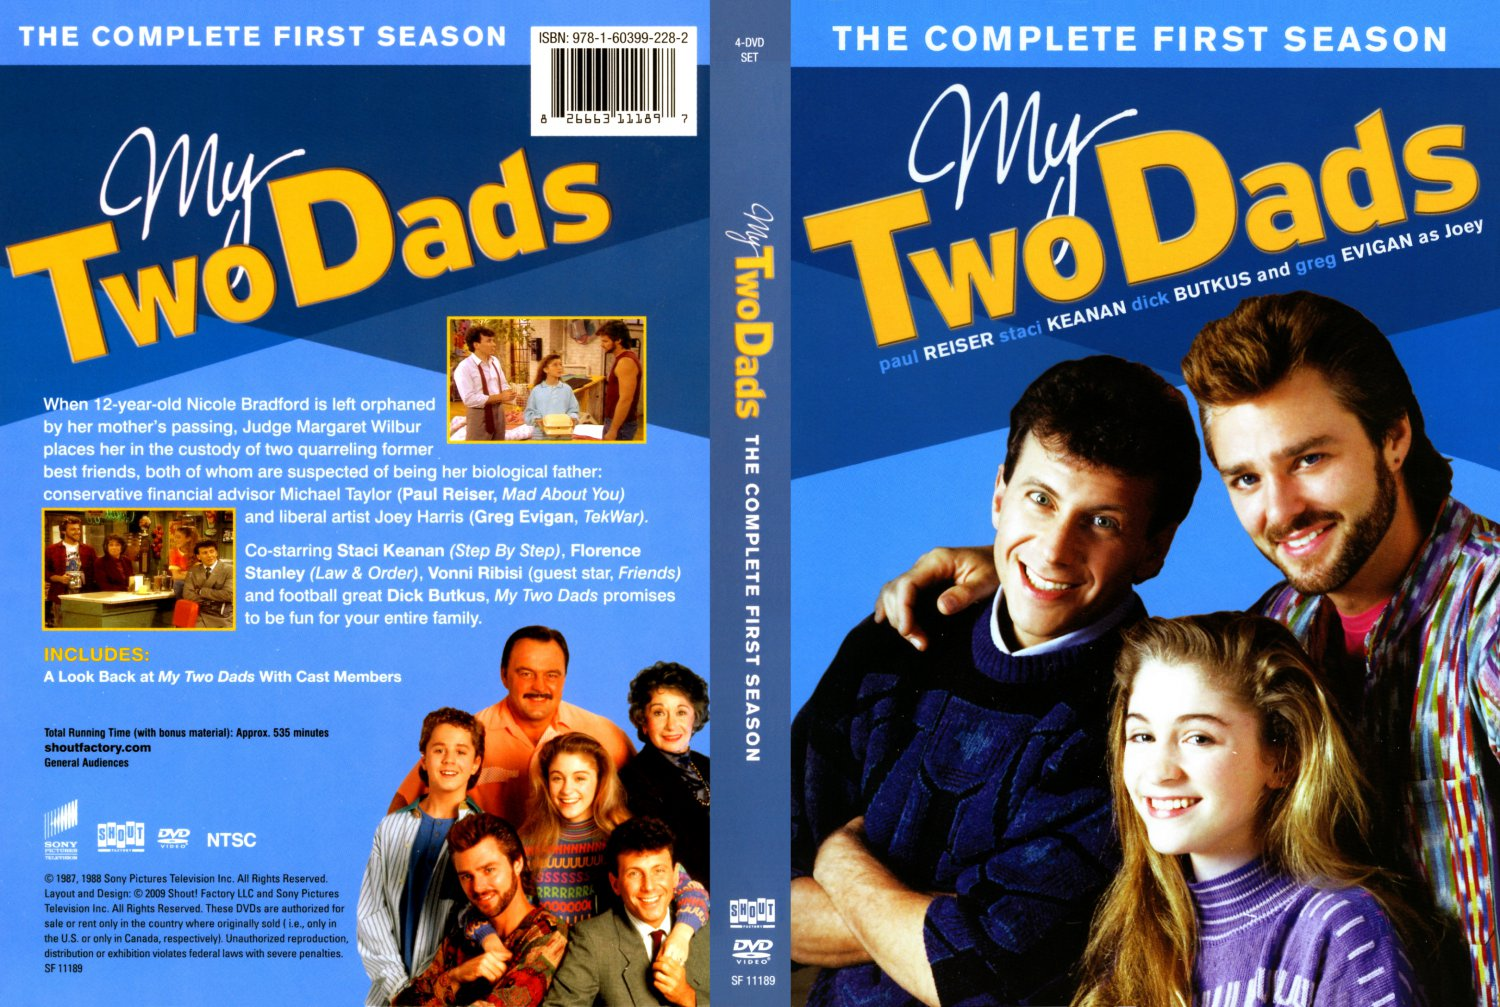 my two dads by marie g Add logo here my two dads questions 1 where did marie g lee grow up the midwest 2 what did she know about her father's past she knew that he.